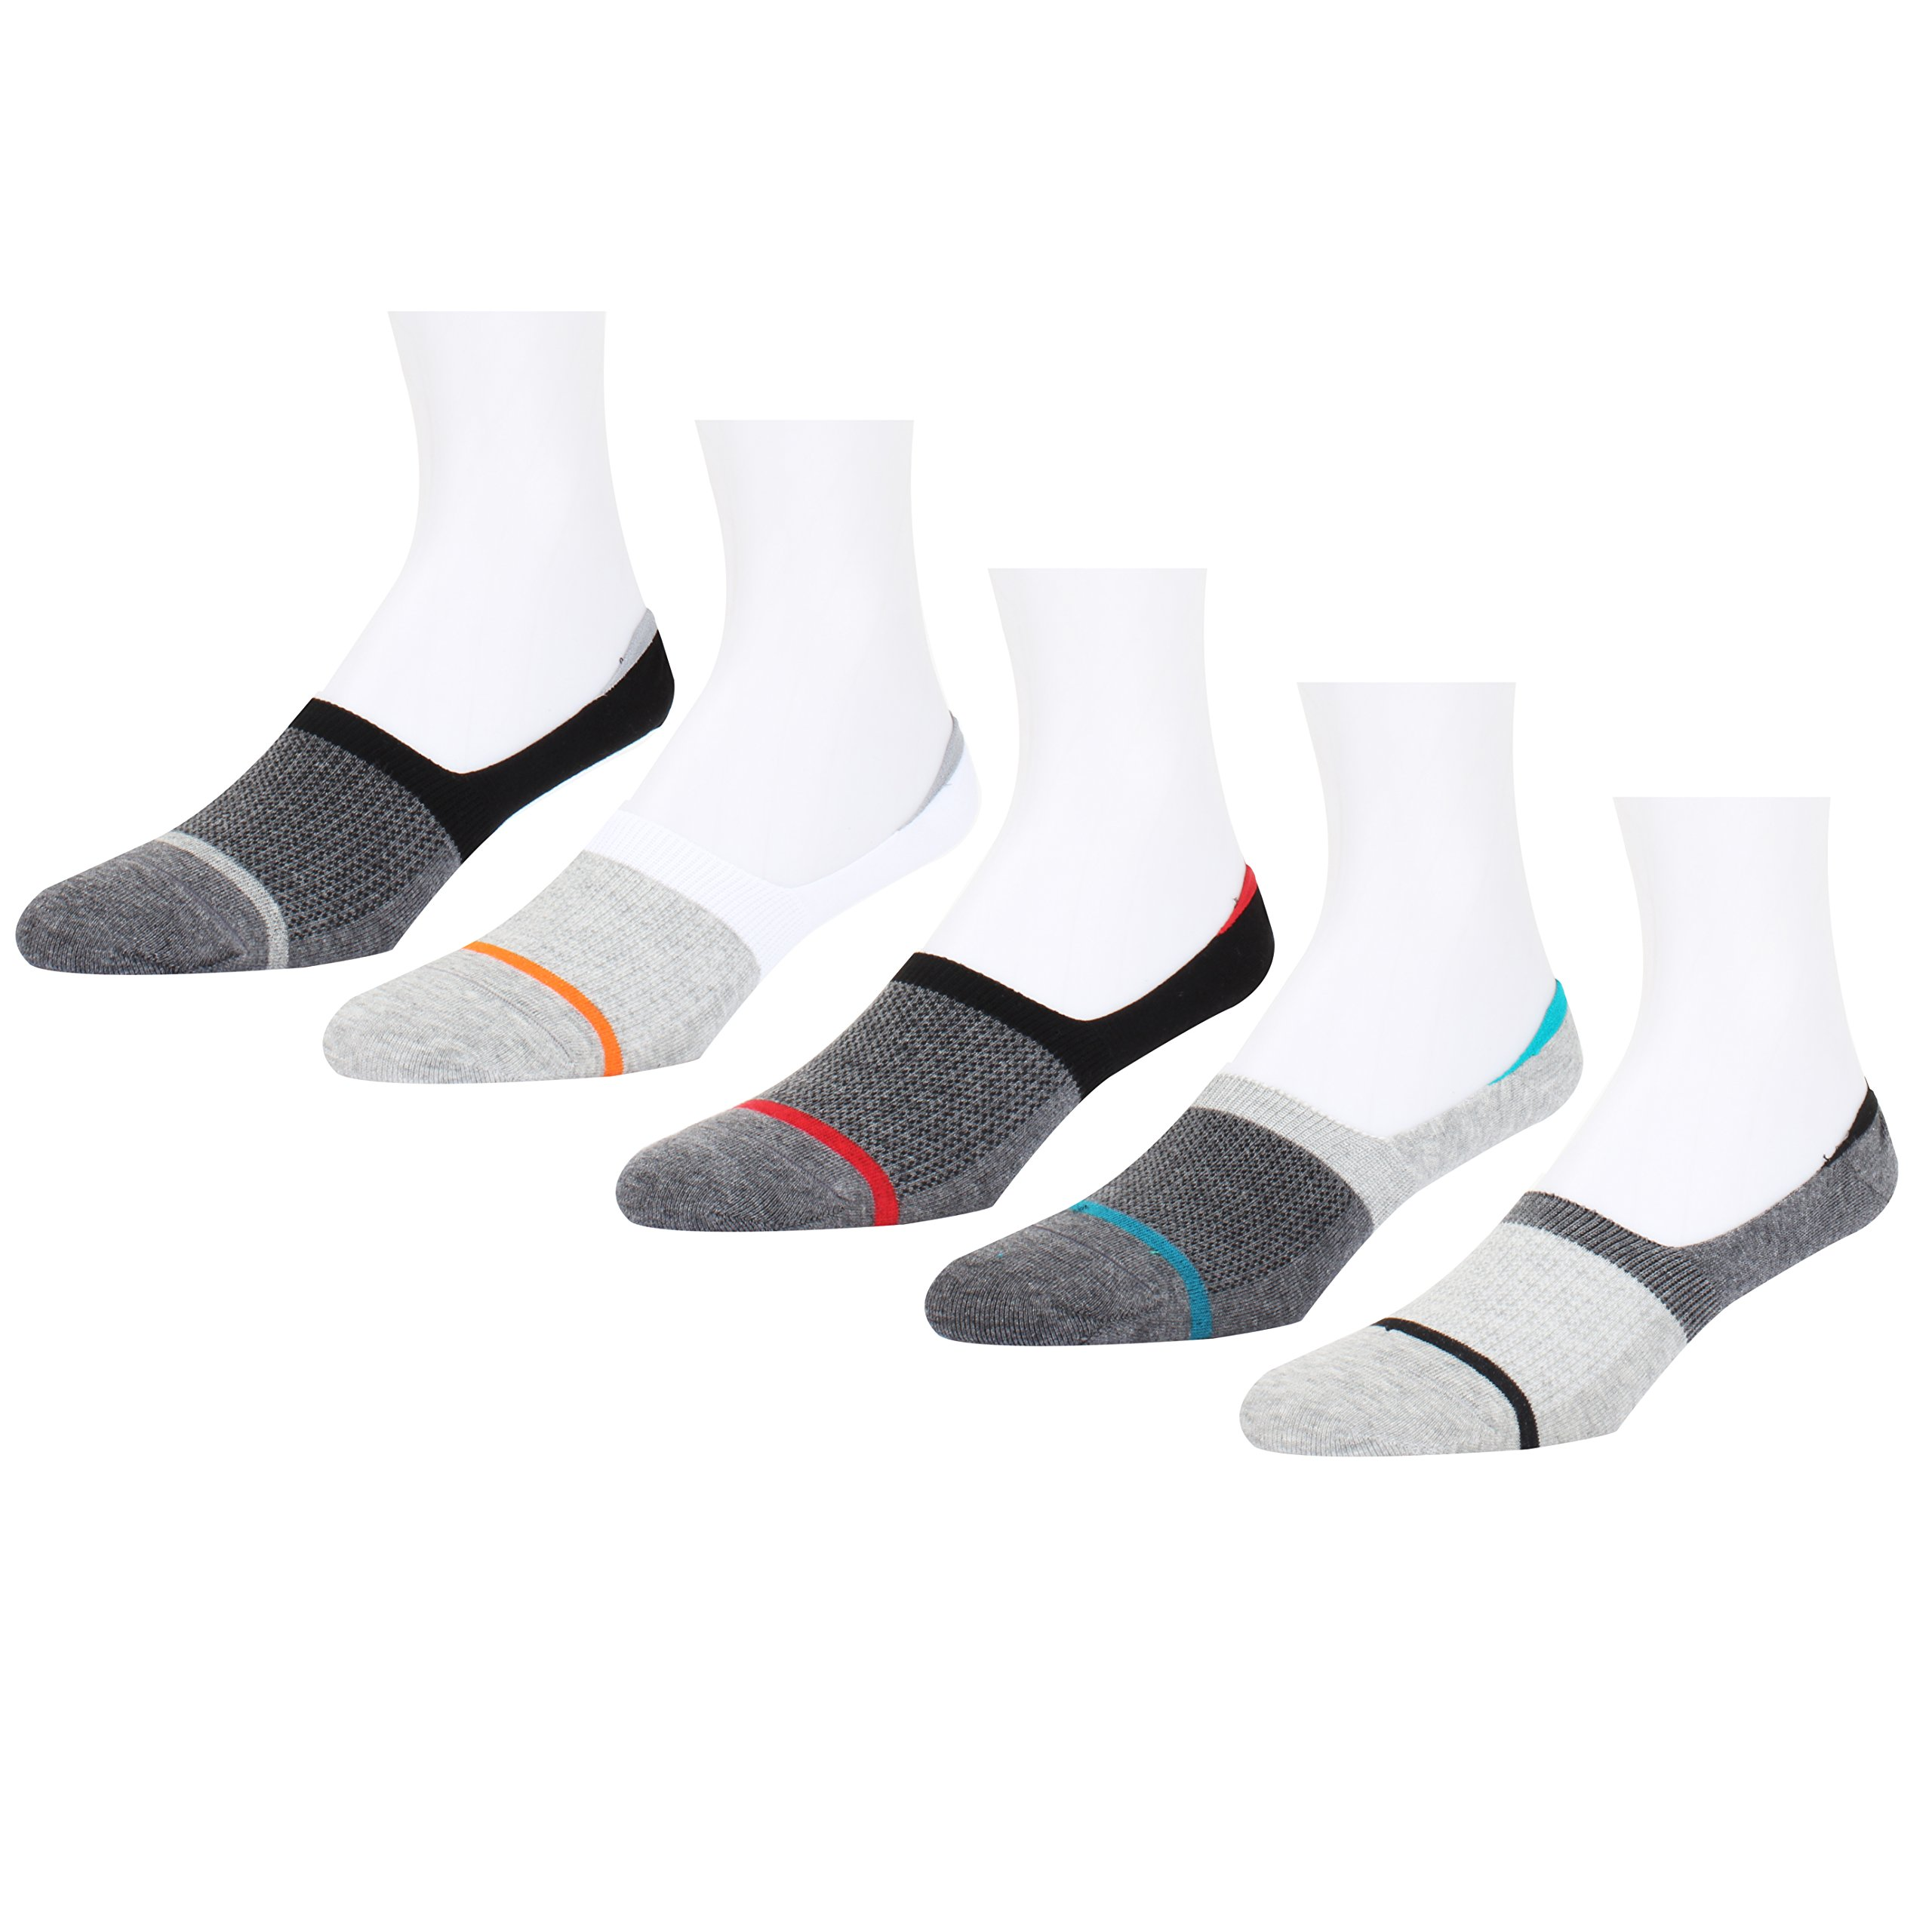 Mens No Show Socks Colorful Stripes Pattern Anti-Slip Grip Low Cut Liner Combed Cotton Funny Socks for Summer 5 Pairs